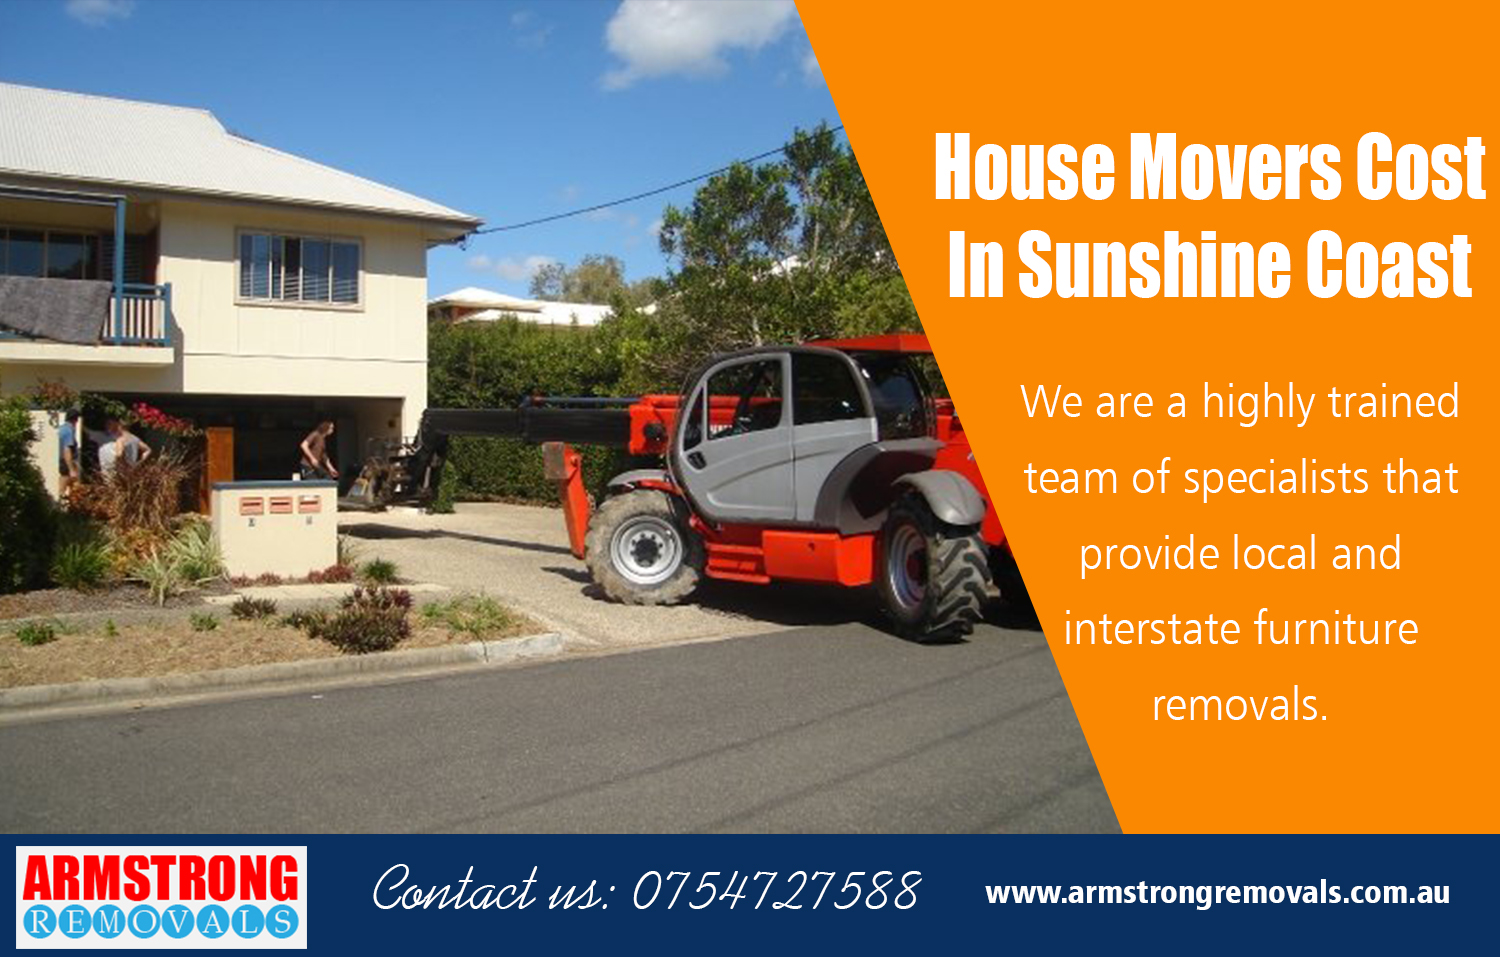 House Movers Cost In Sunshine Coast